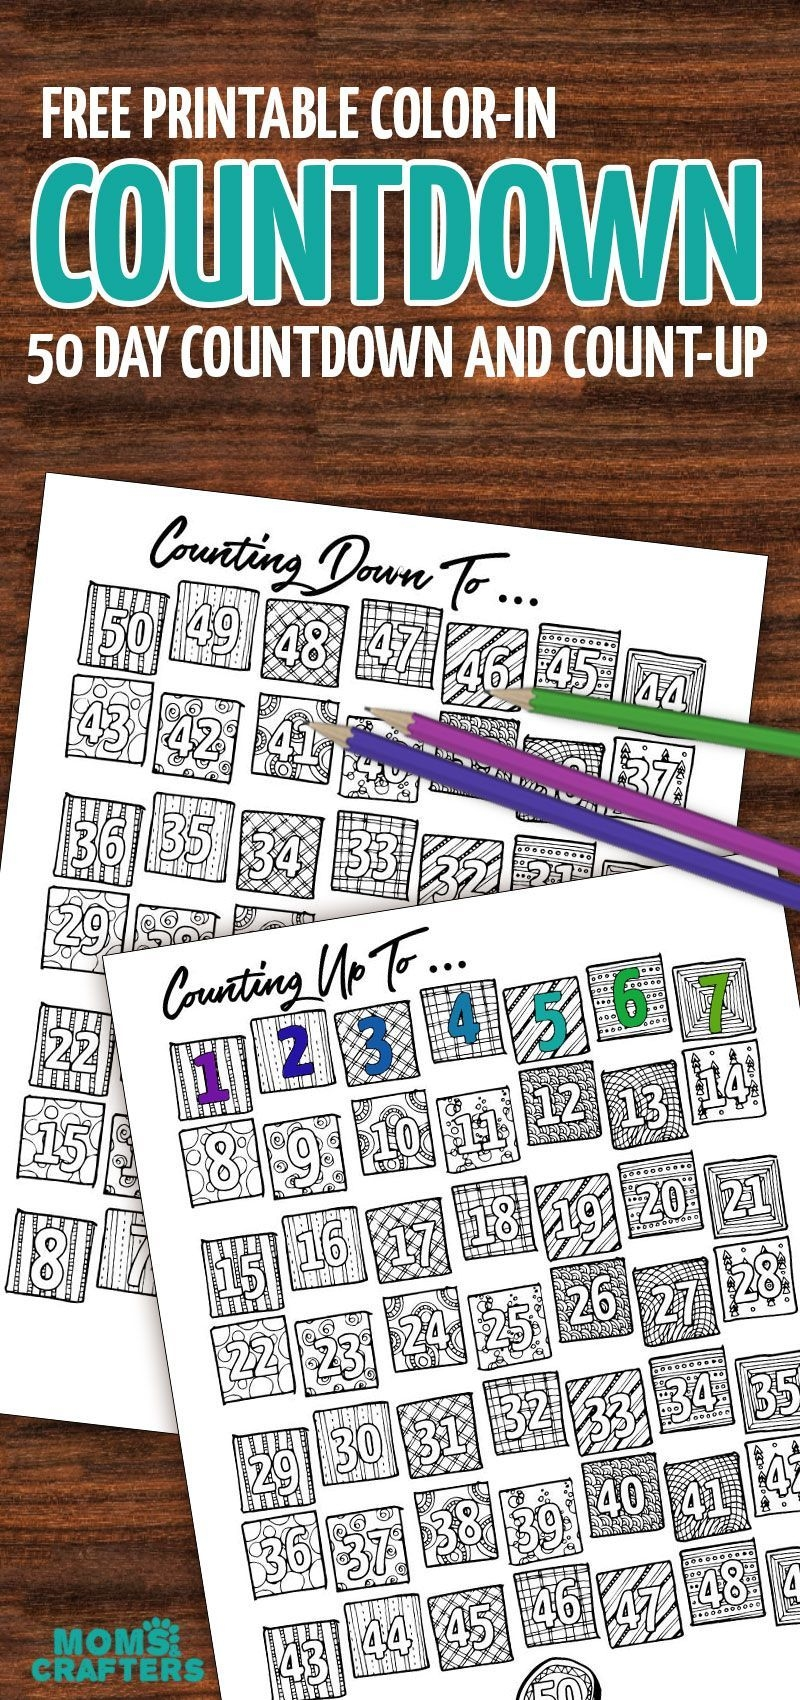 Grab This Fun Color-In Countdown And Progress Tracker (With